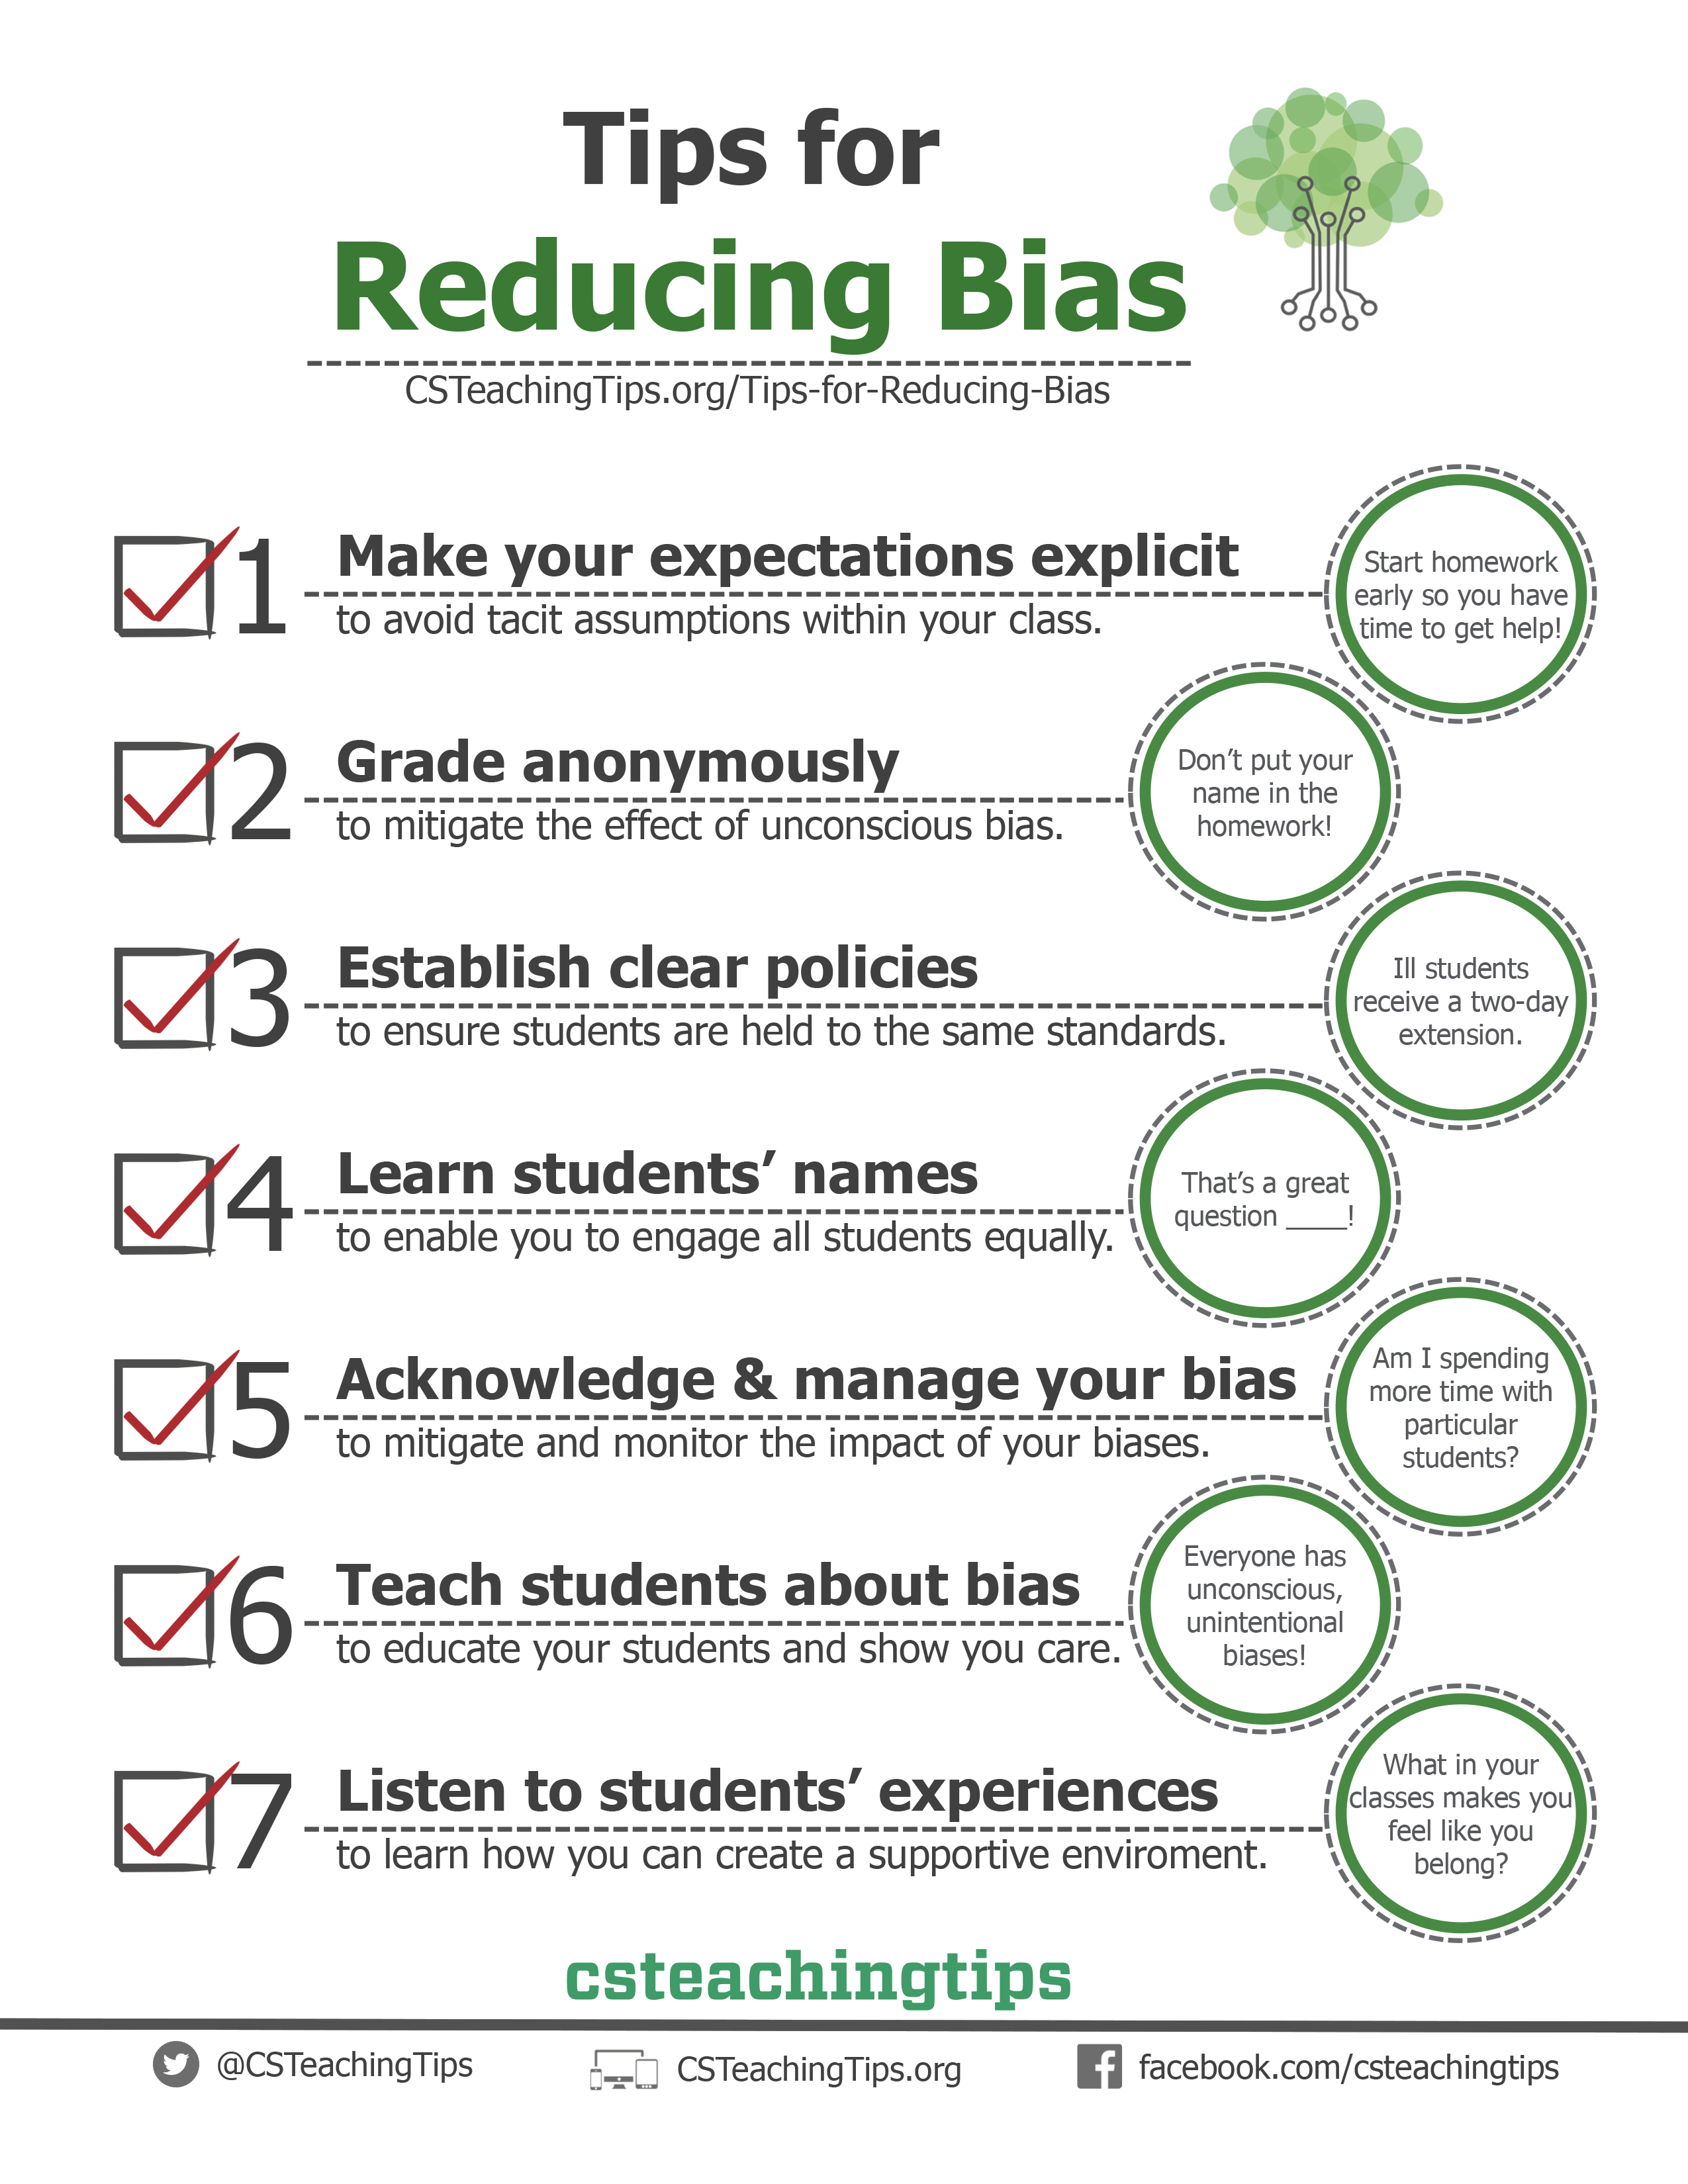 Tips for Reducing Bias